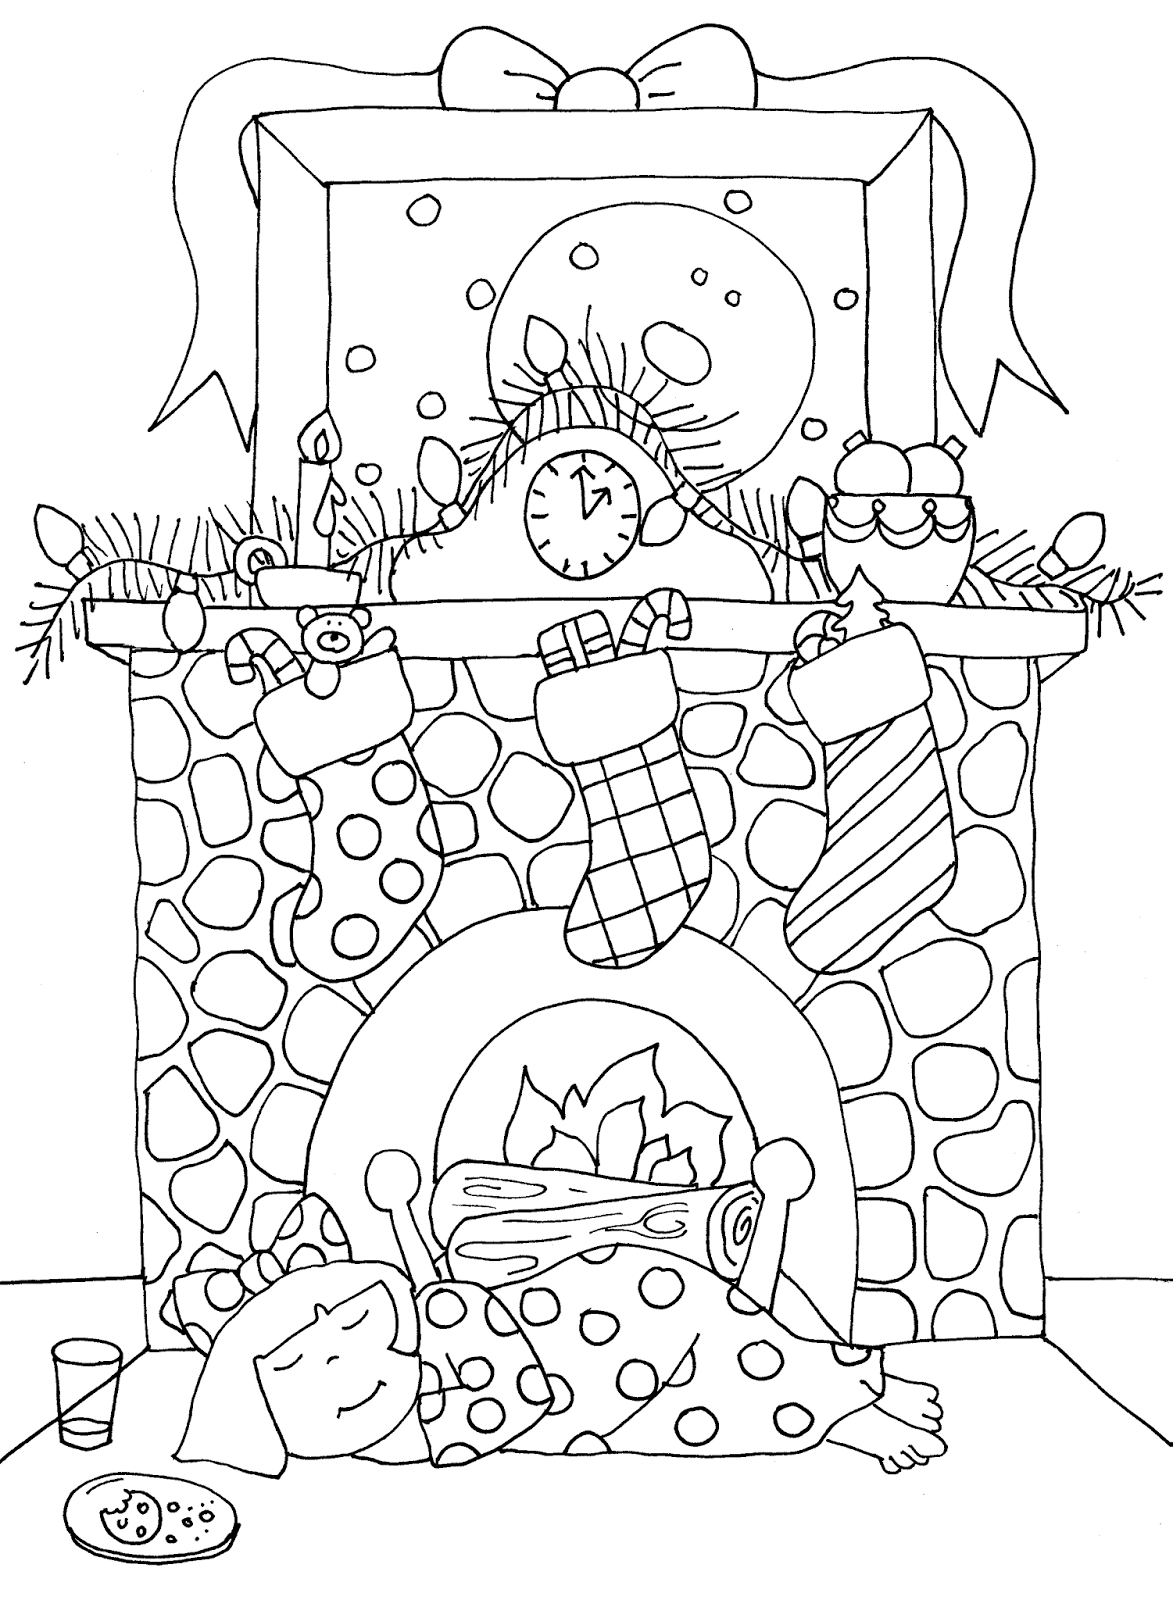 christmas digital llama coloring page | winter preschool coloring